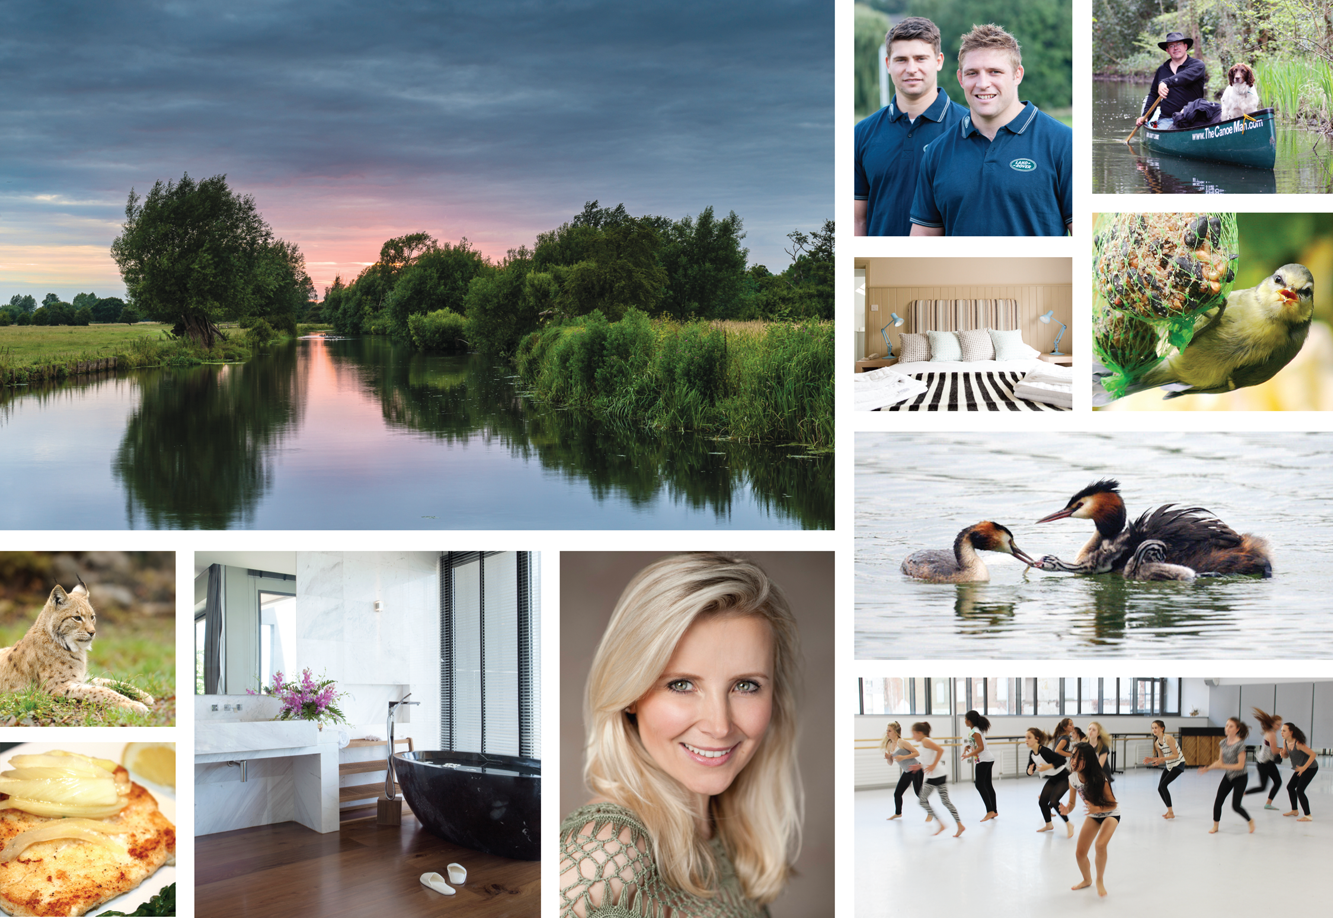 Suffolk Norfolk Life Magazine August 2015 Photographs, Ben Tom Youngs Rughy, Days out, Carley Stenson, Lynx, Bathrooms